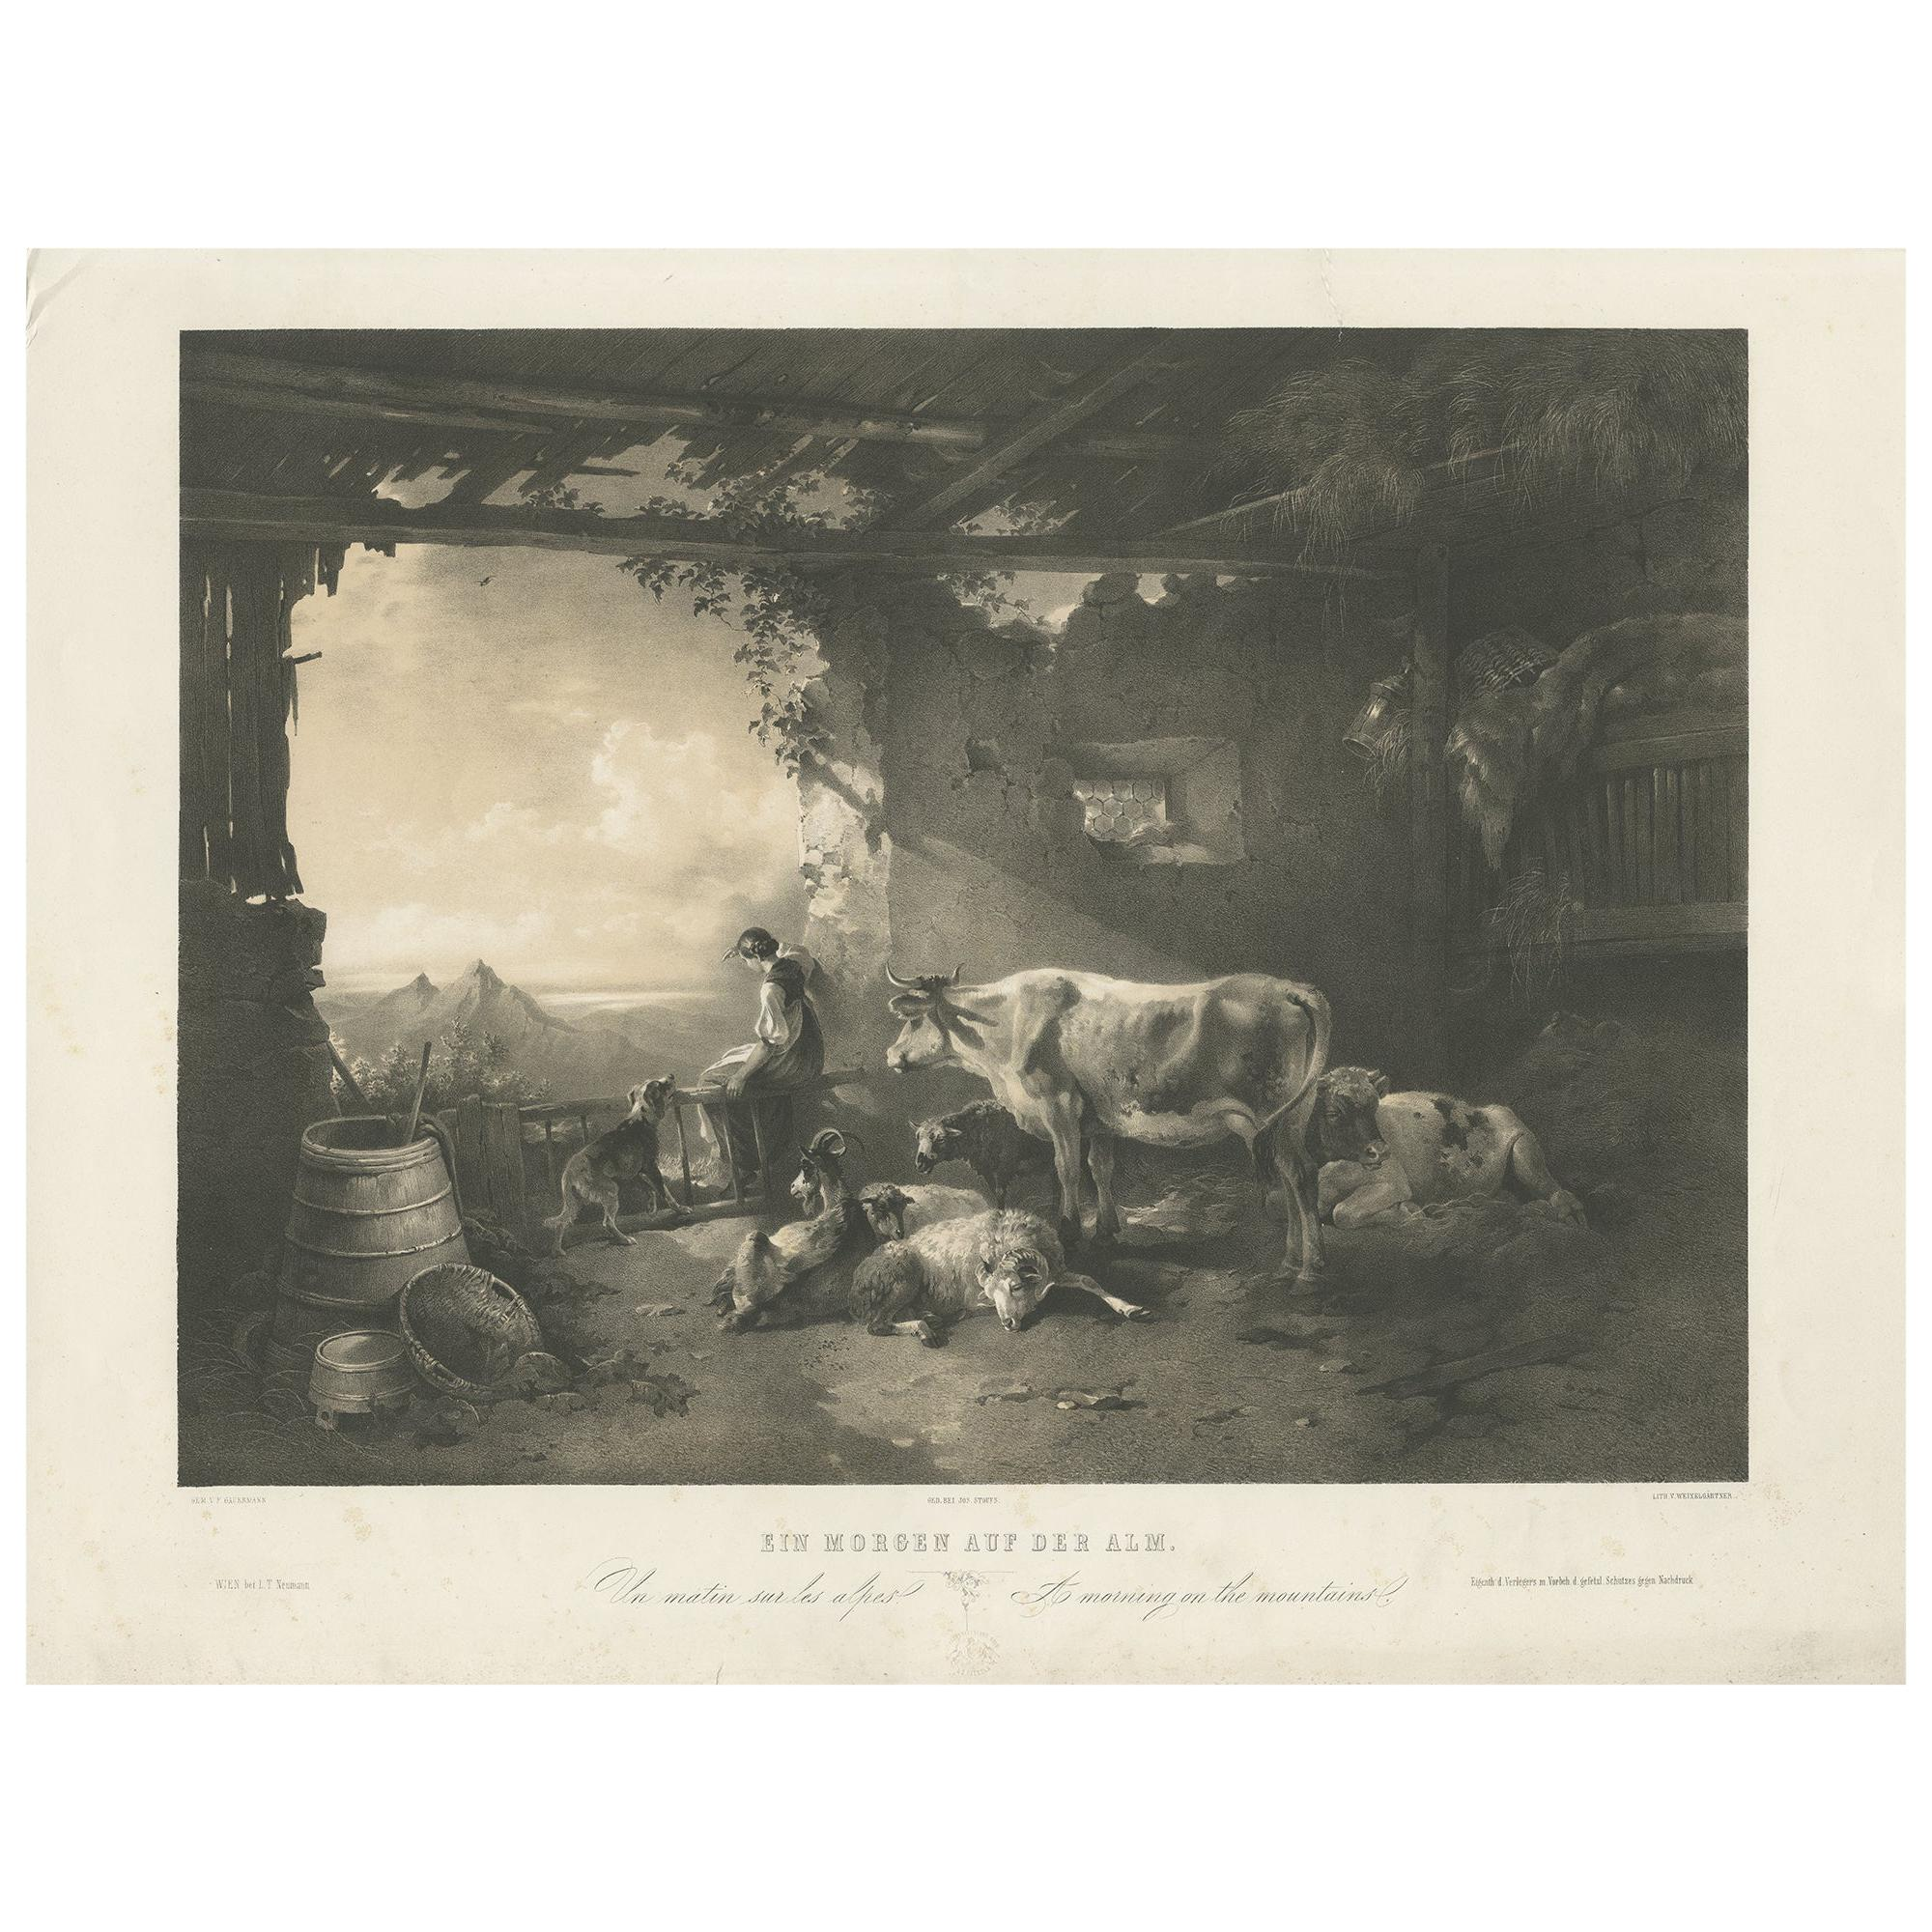 Antique Print of a Morning on the Mountains by Weixelgartner 'c.1860'